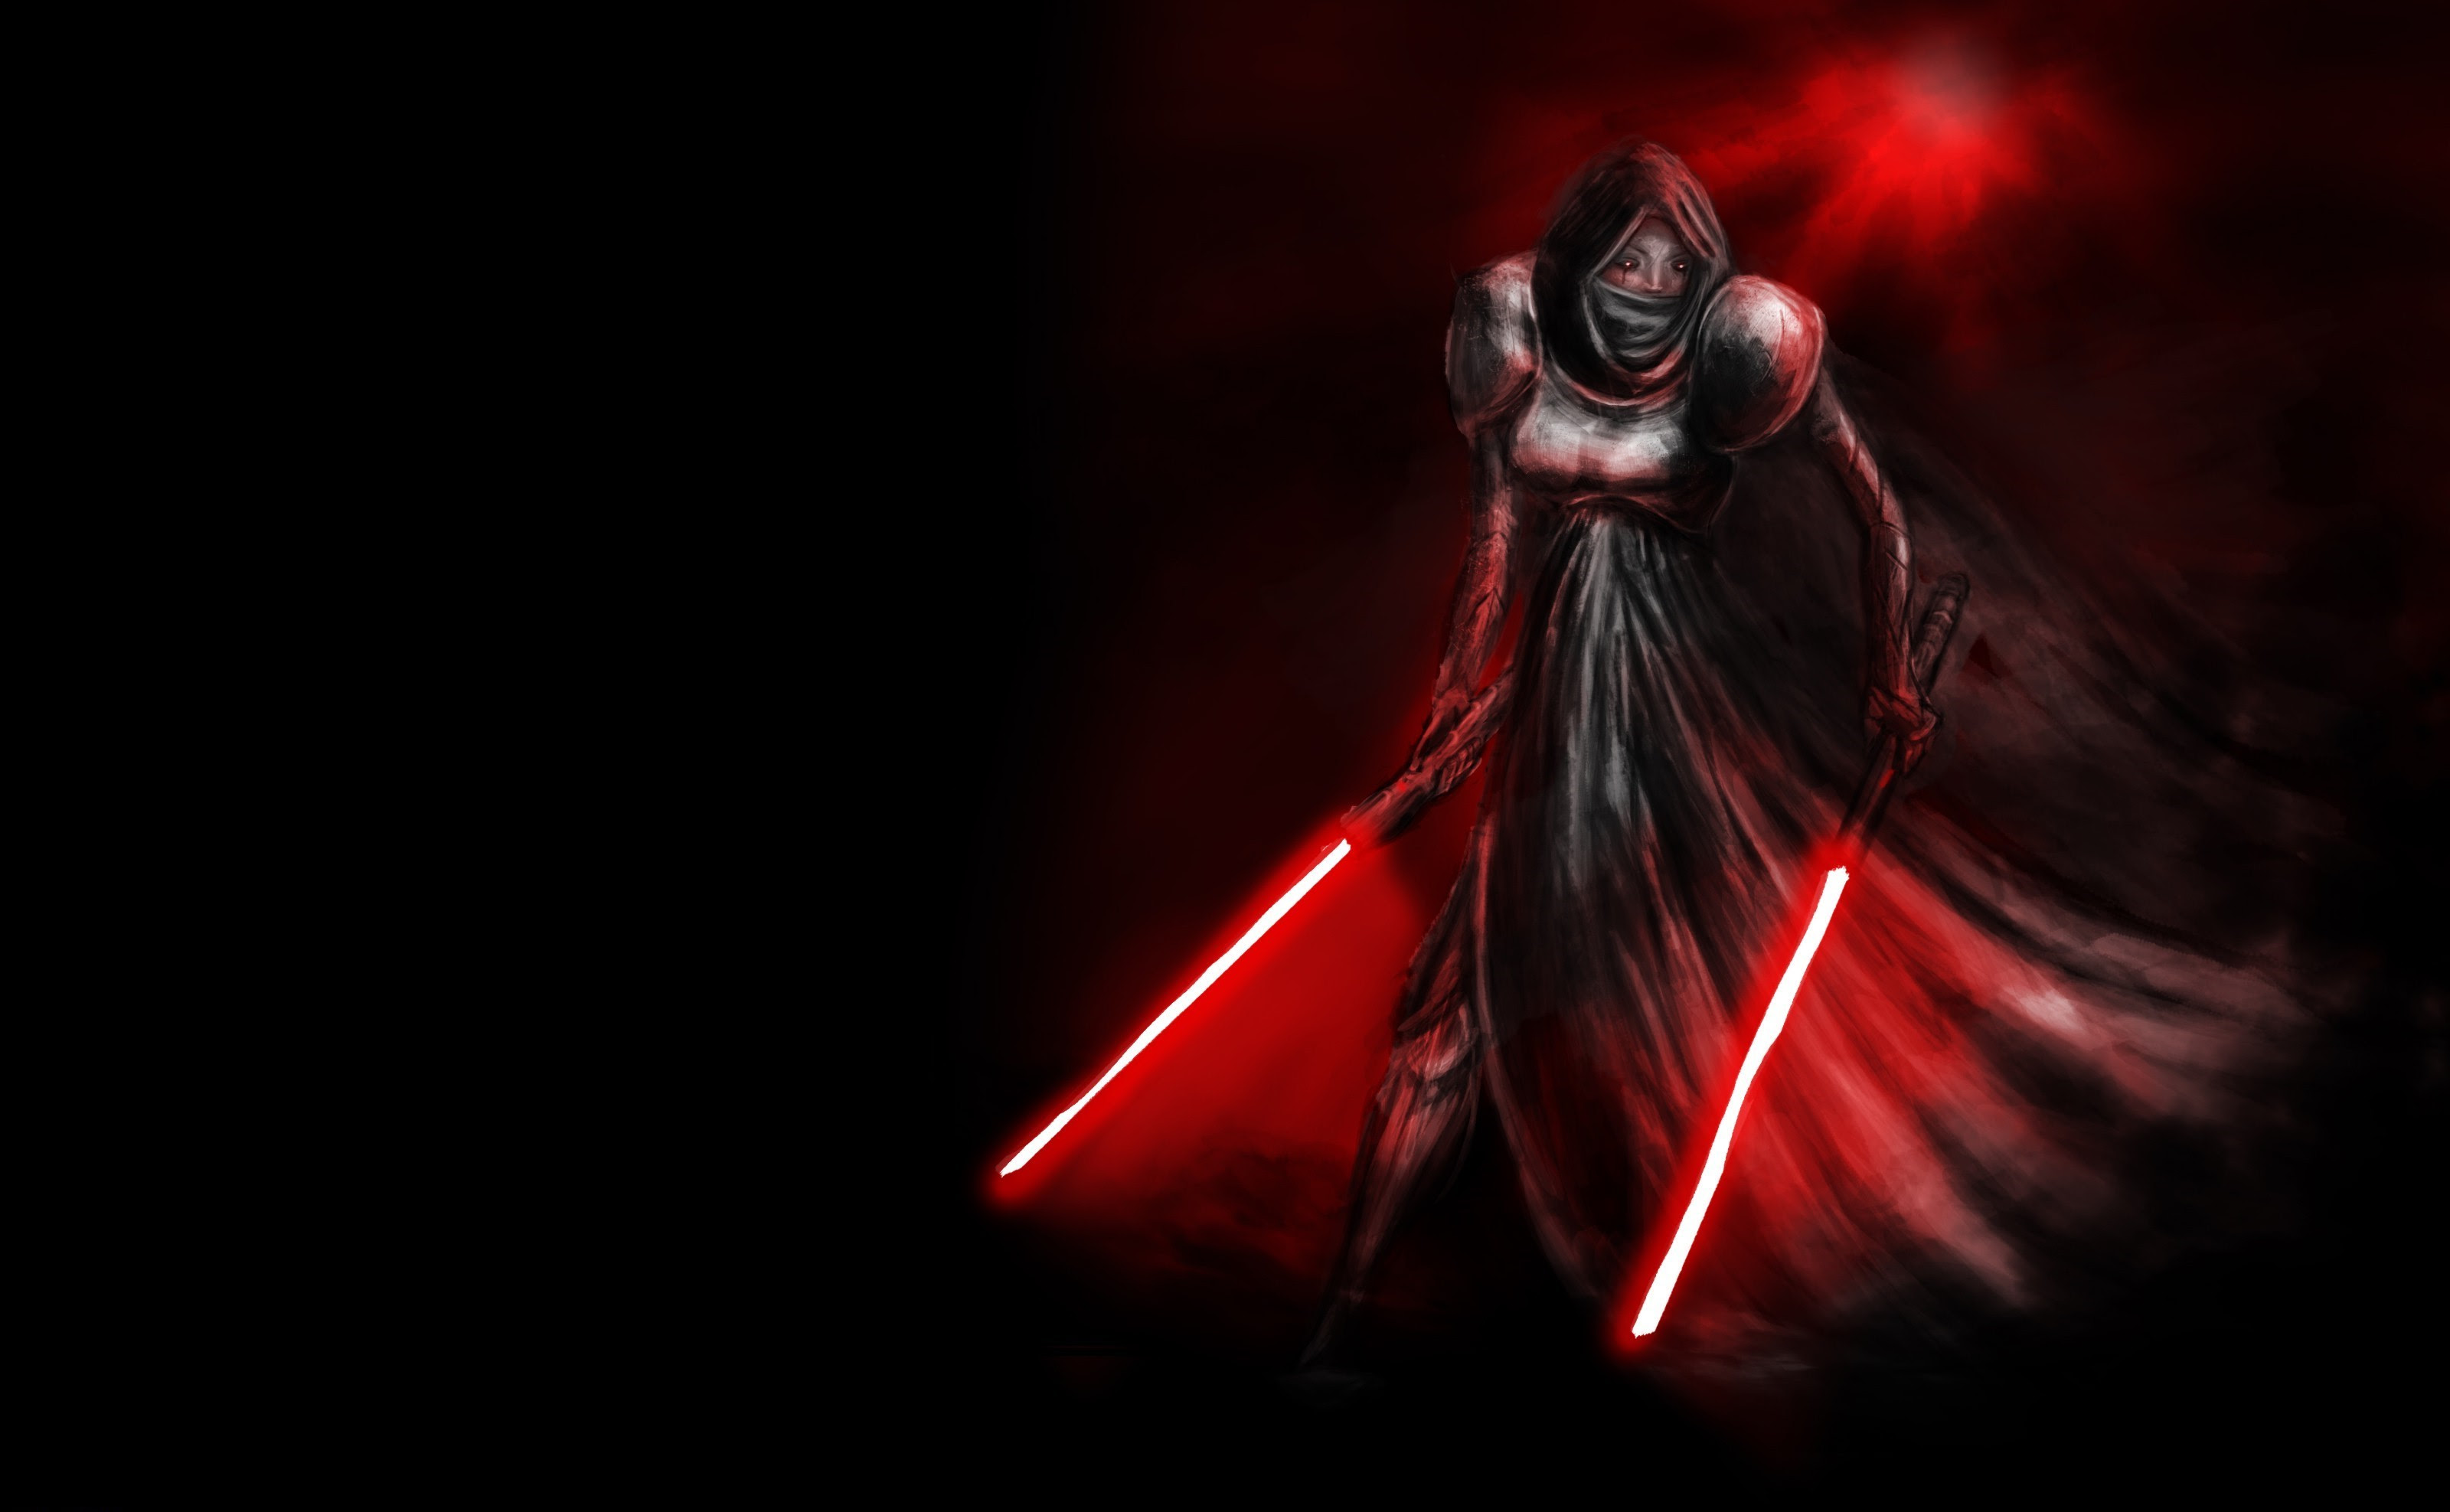 Star Wars Lightsaber Wallpapers Hd Desktop And Mobile Backgrounds